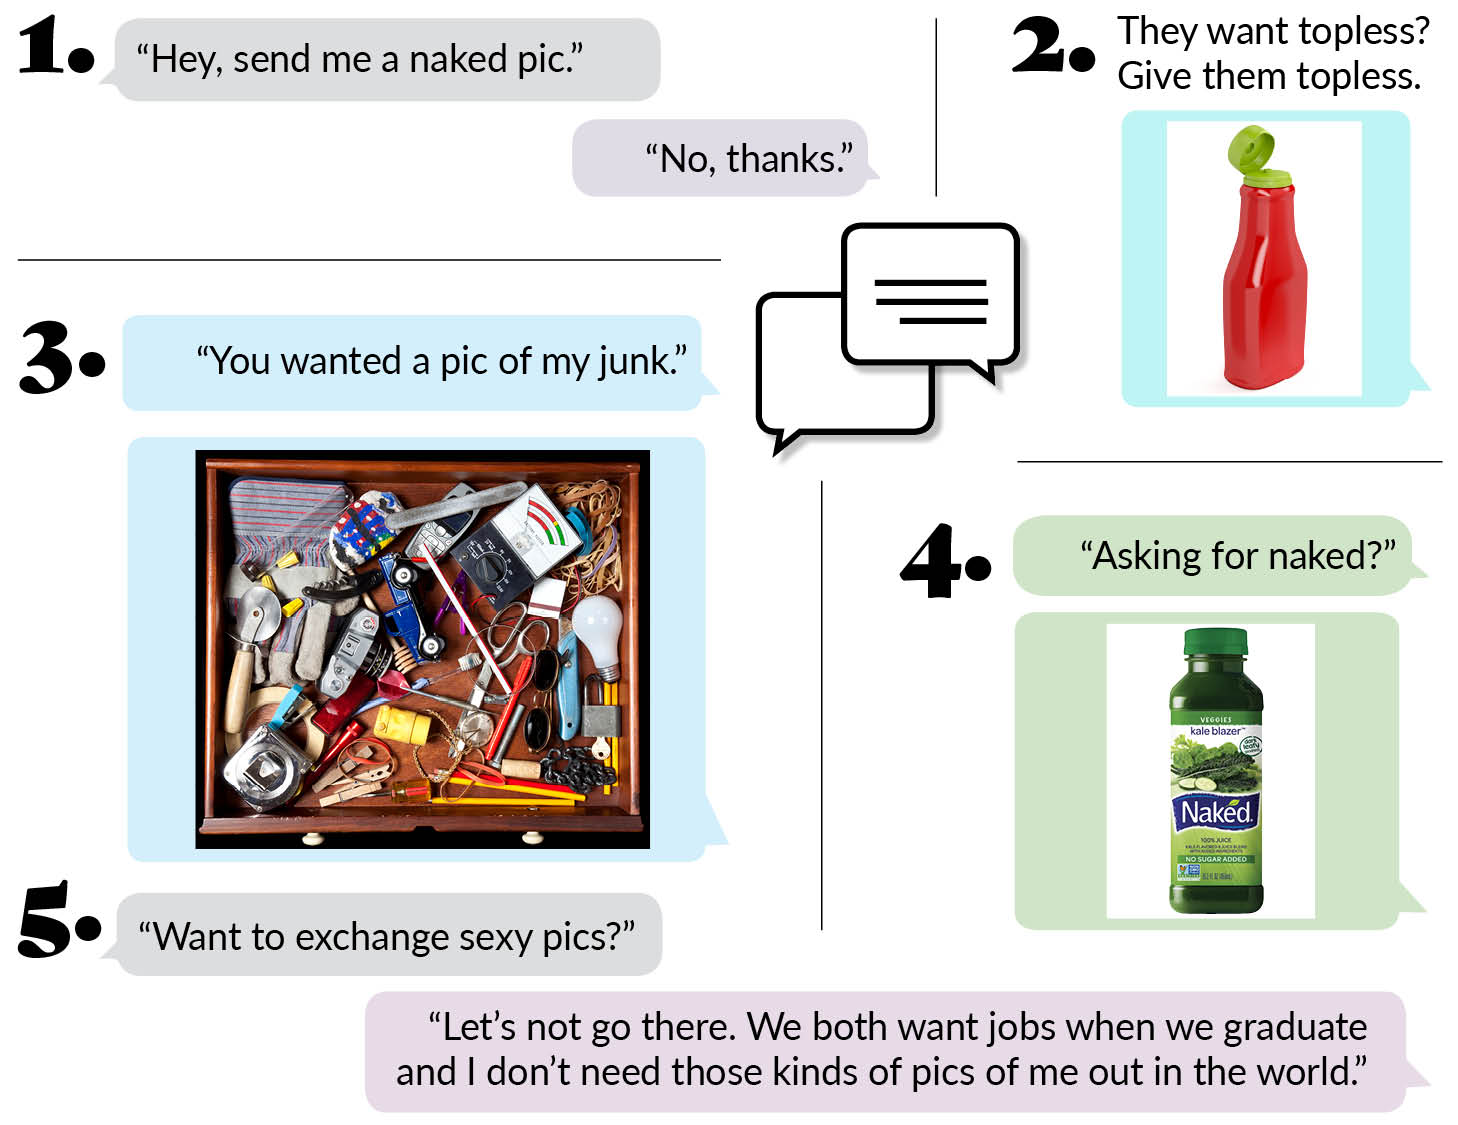 "Graphic: 1. ""Hey, send me a naked pic."" ""No, thanks."" 2. They want topless? Give them topless. Picture of an open ketchup bottle 3. ""You wanted a pic of my junk."" Picture of messy drawer. 4. ""Asking for naked?"" Picture of Naked brand juice. 5. ""Want to exchange sexy pics?"" ""Let's not go there. We both want jobs when we graduate and I don't need those kinds of pics of me out in the world."""